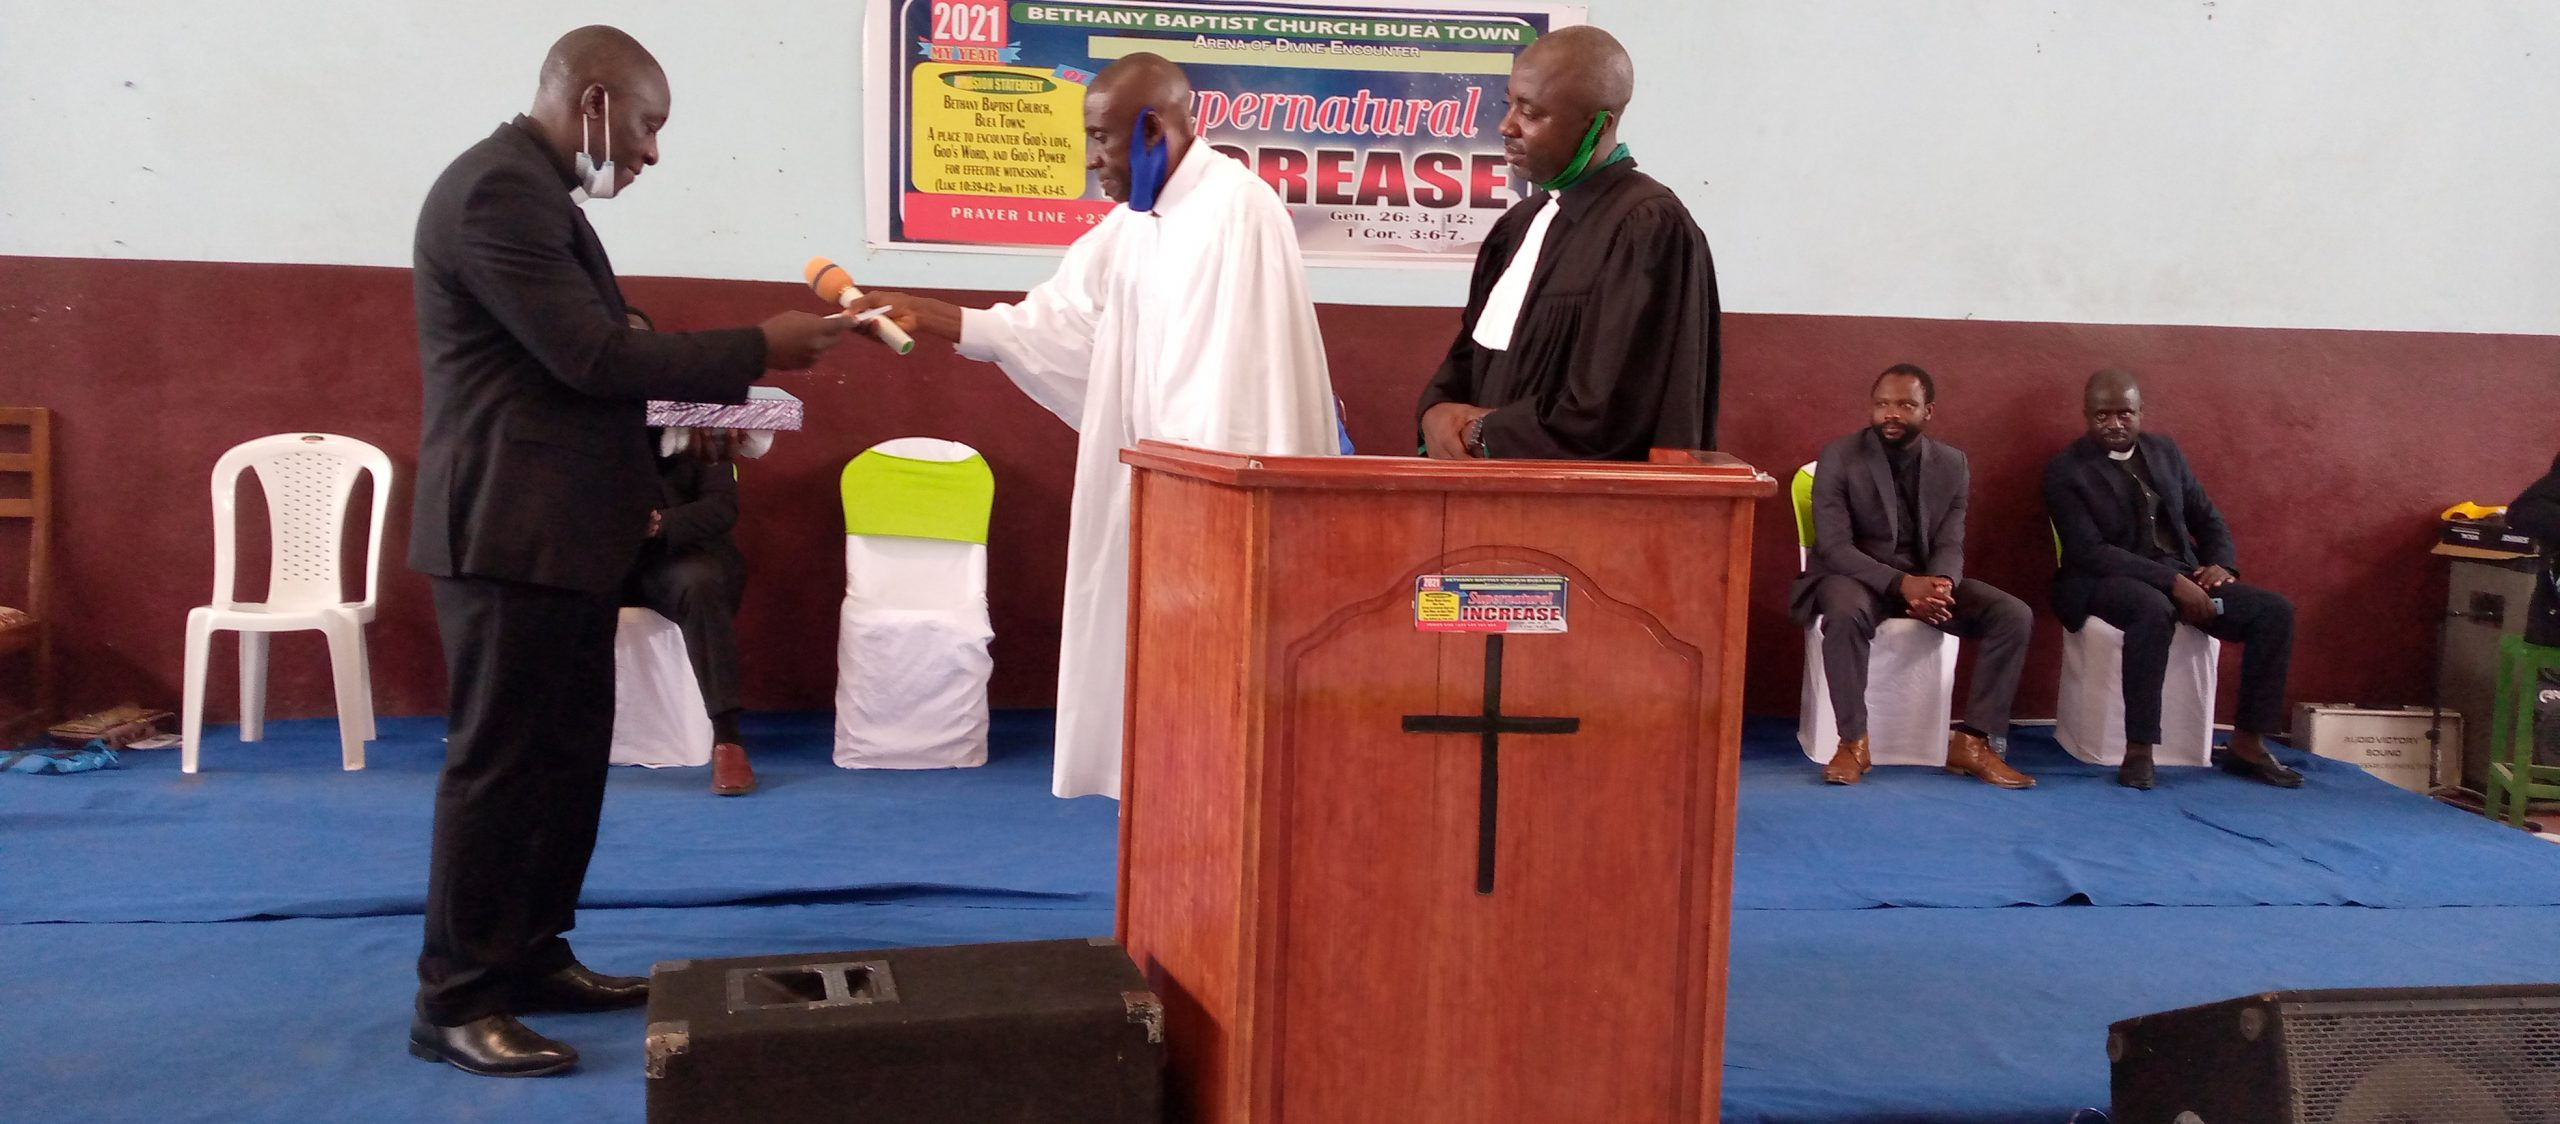 Bethany Baptist Church Buea Town Inducts Pastor